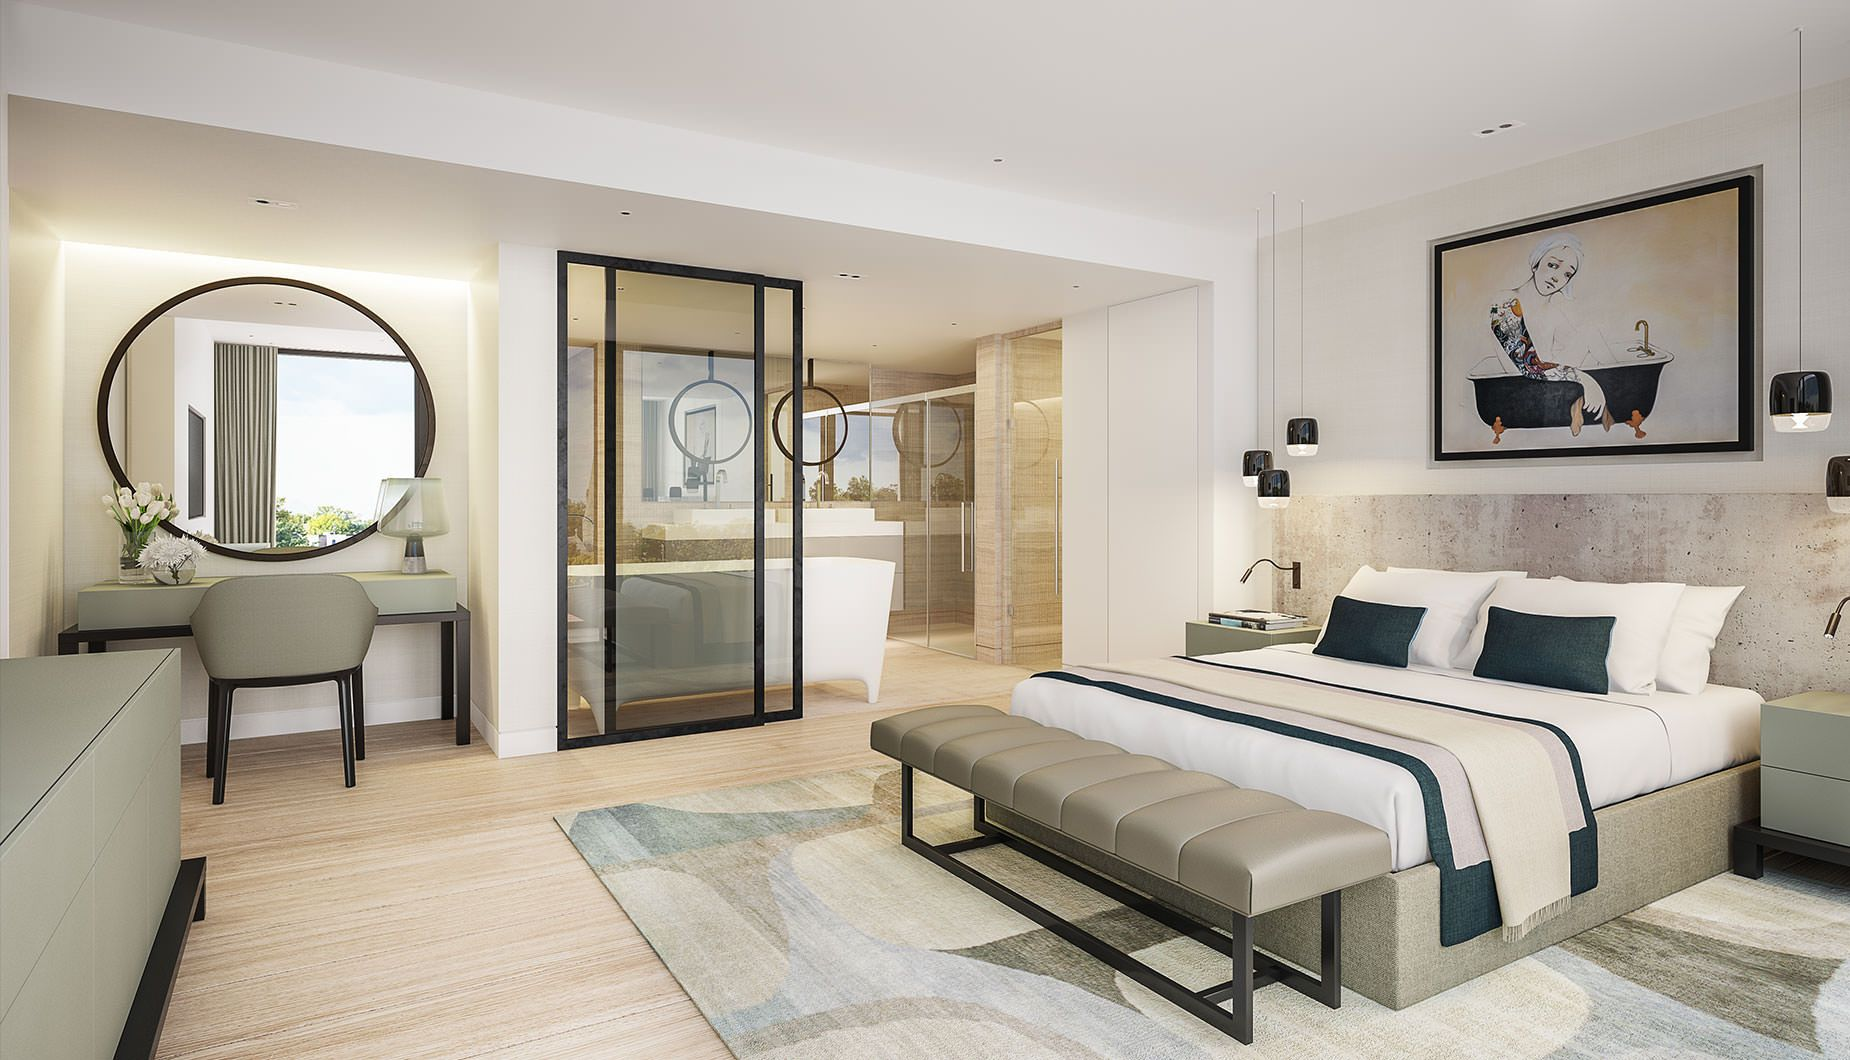 Luxury Contemporary Master Bedroom Suite With Open Plan Ensuite Bathroom Bedroom Decor